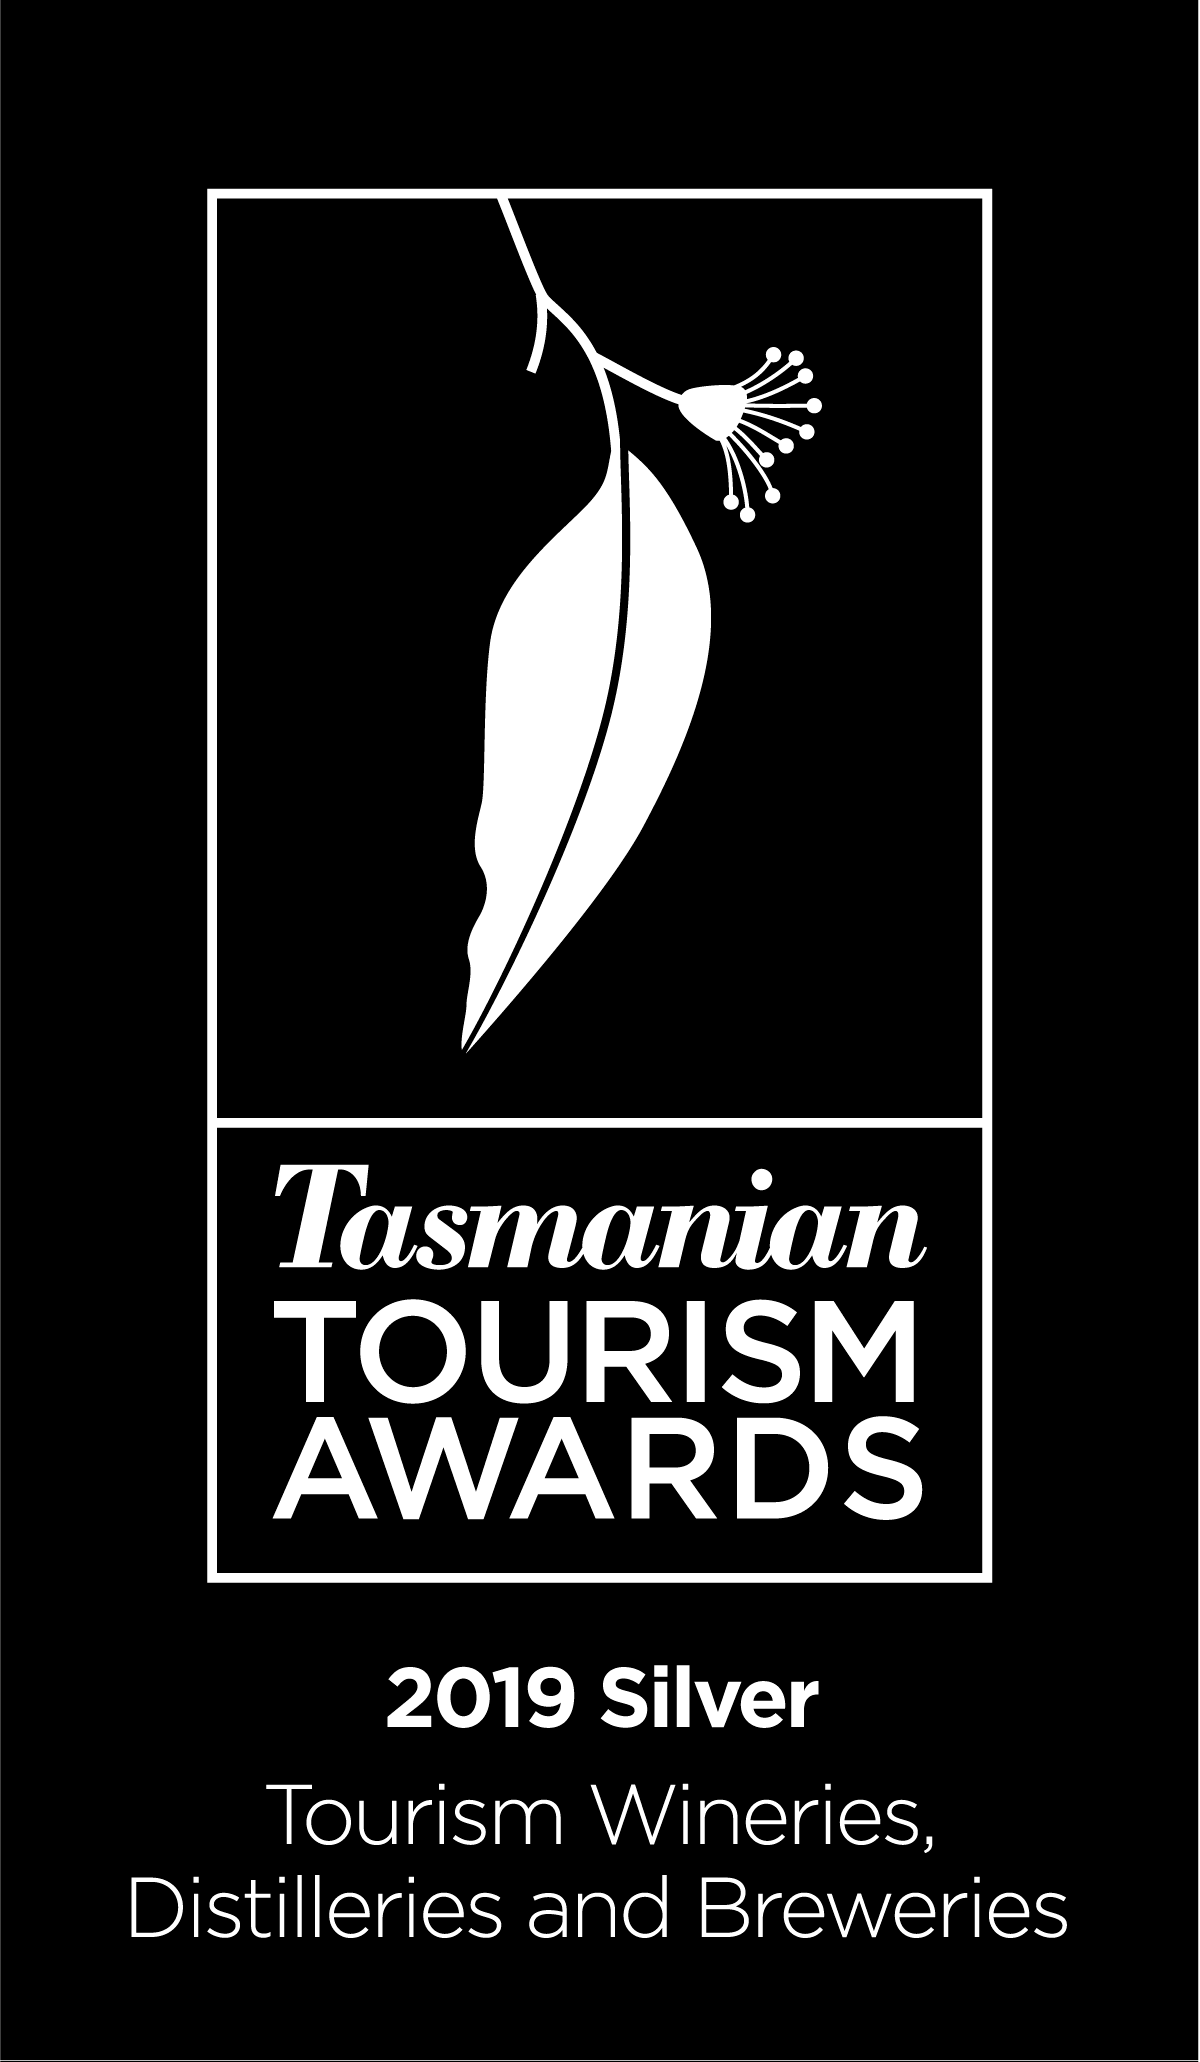 Tasmanian Tourism Awards 2019 Silver